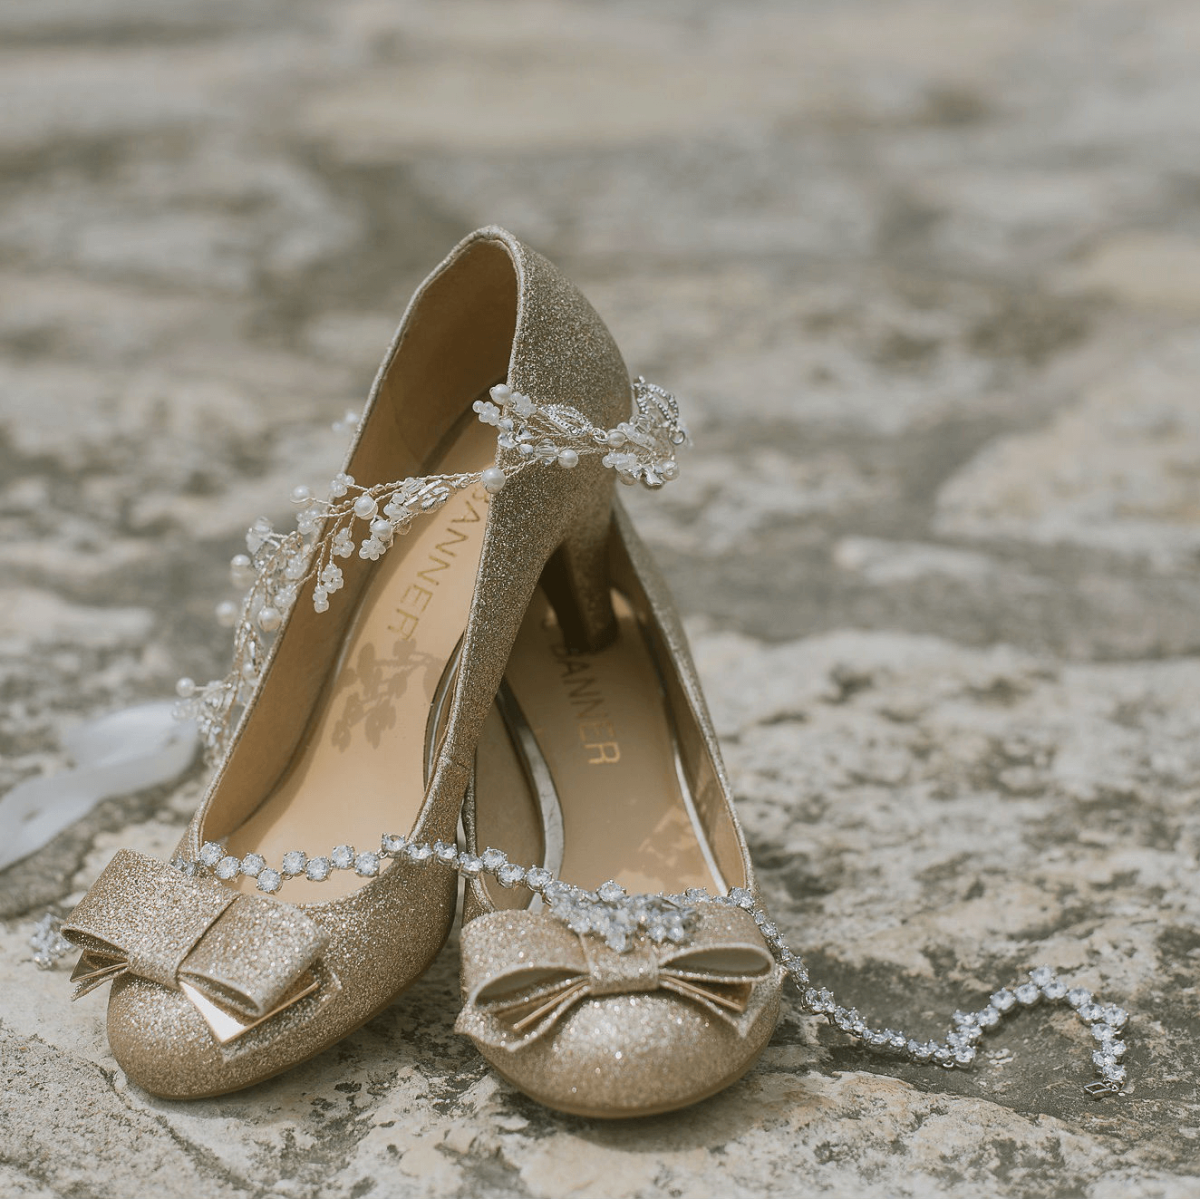 Details of Sonya and Jimmy's Dripping Springs Wedding